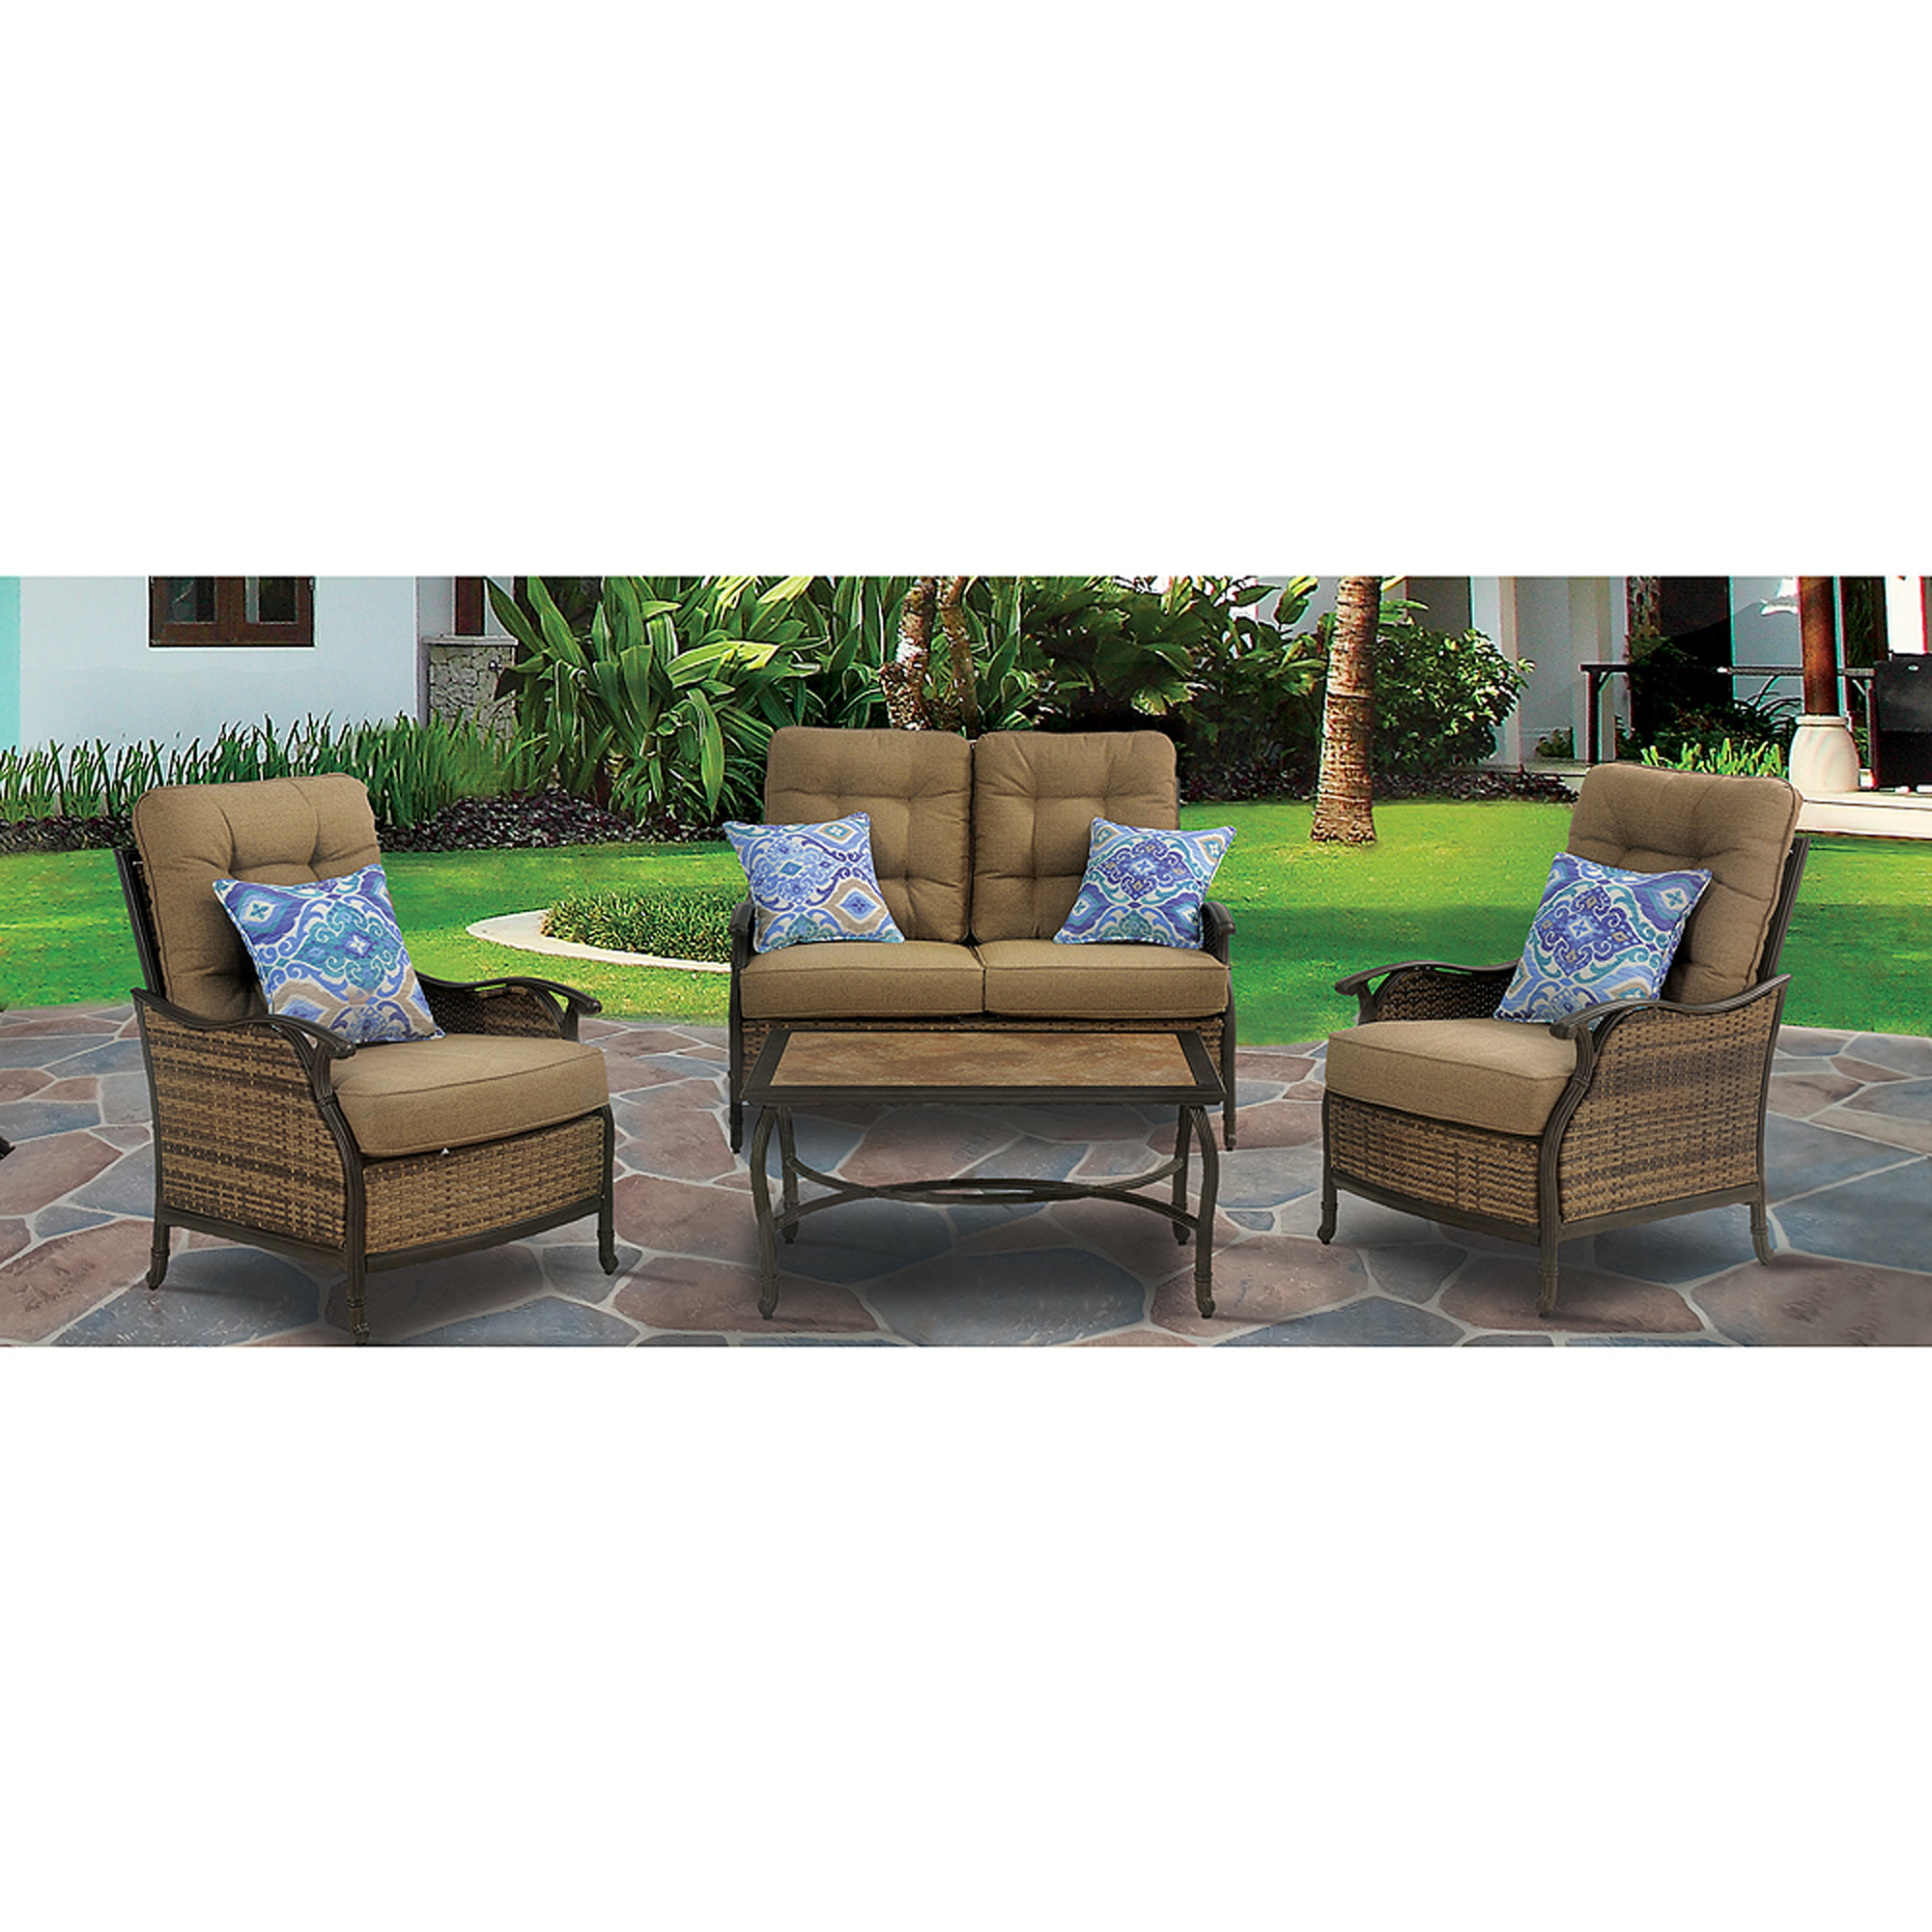 hanover hudson square 4-piece outdoor deep-seating lounge set